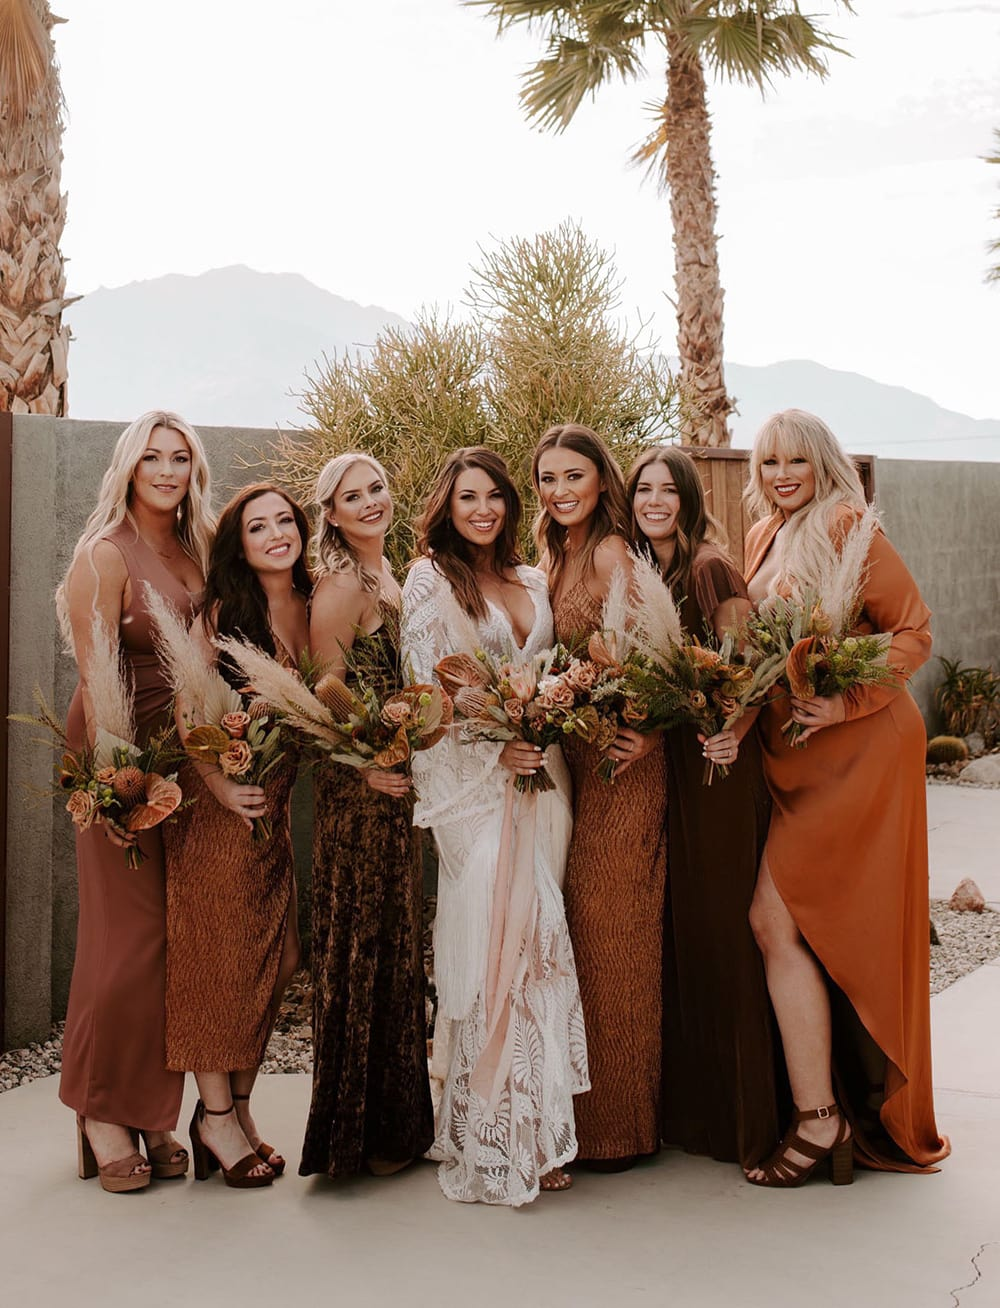 Boho Rust & White Wedding Ideas | Boho bridesmaids wearing mismatched dresses in earthy colours like burnt orange, terracotta and rust. The bride stands in the centre of the group wearing a white boho wedding dress featuring long bell sleeves, a plunging V neckline and lace in a bold foliage pattern. The wedding party wear their hair down in relaxed waves and carry neutral boho wedding bouquets featuring pampas grass, protea, anthurium and roses. The bride's bouquet is tied with long flowing blush ribbons. | Photography: Ashley M. Clayton via Green Wedding Shoes